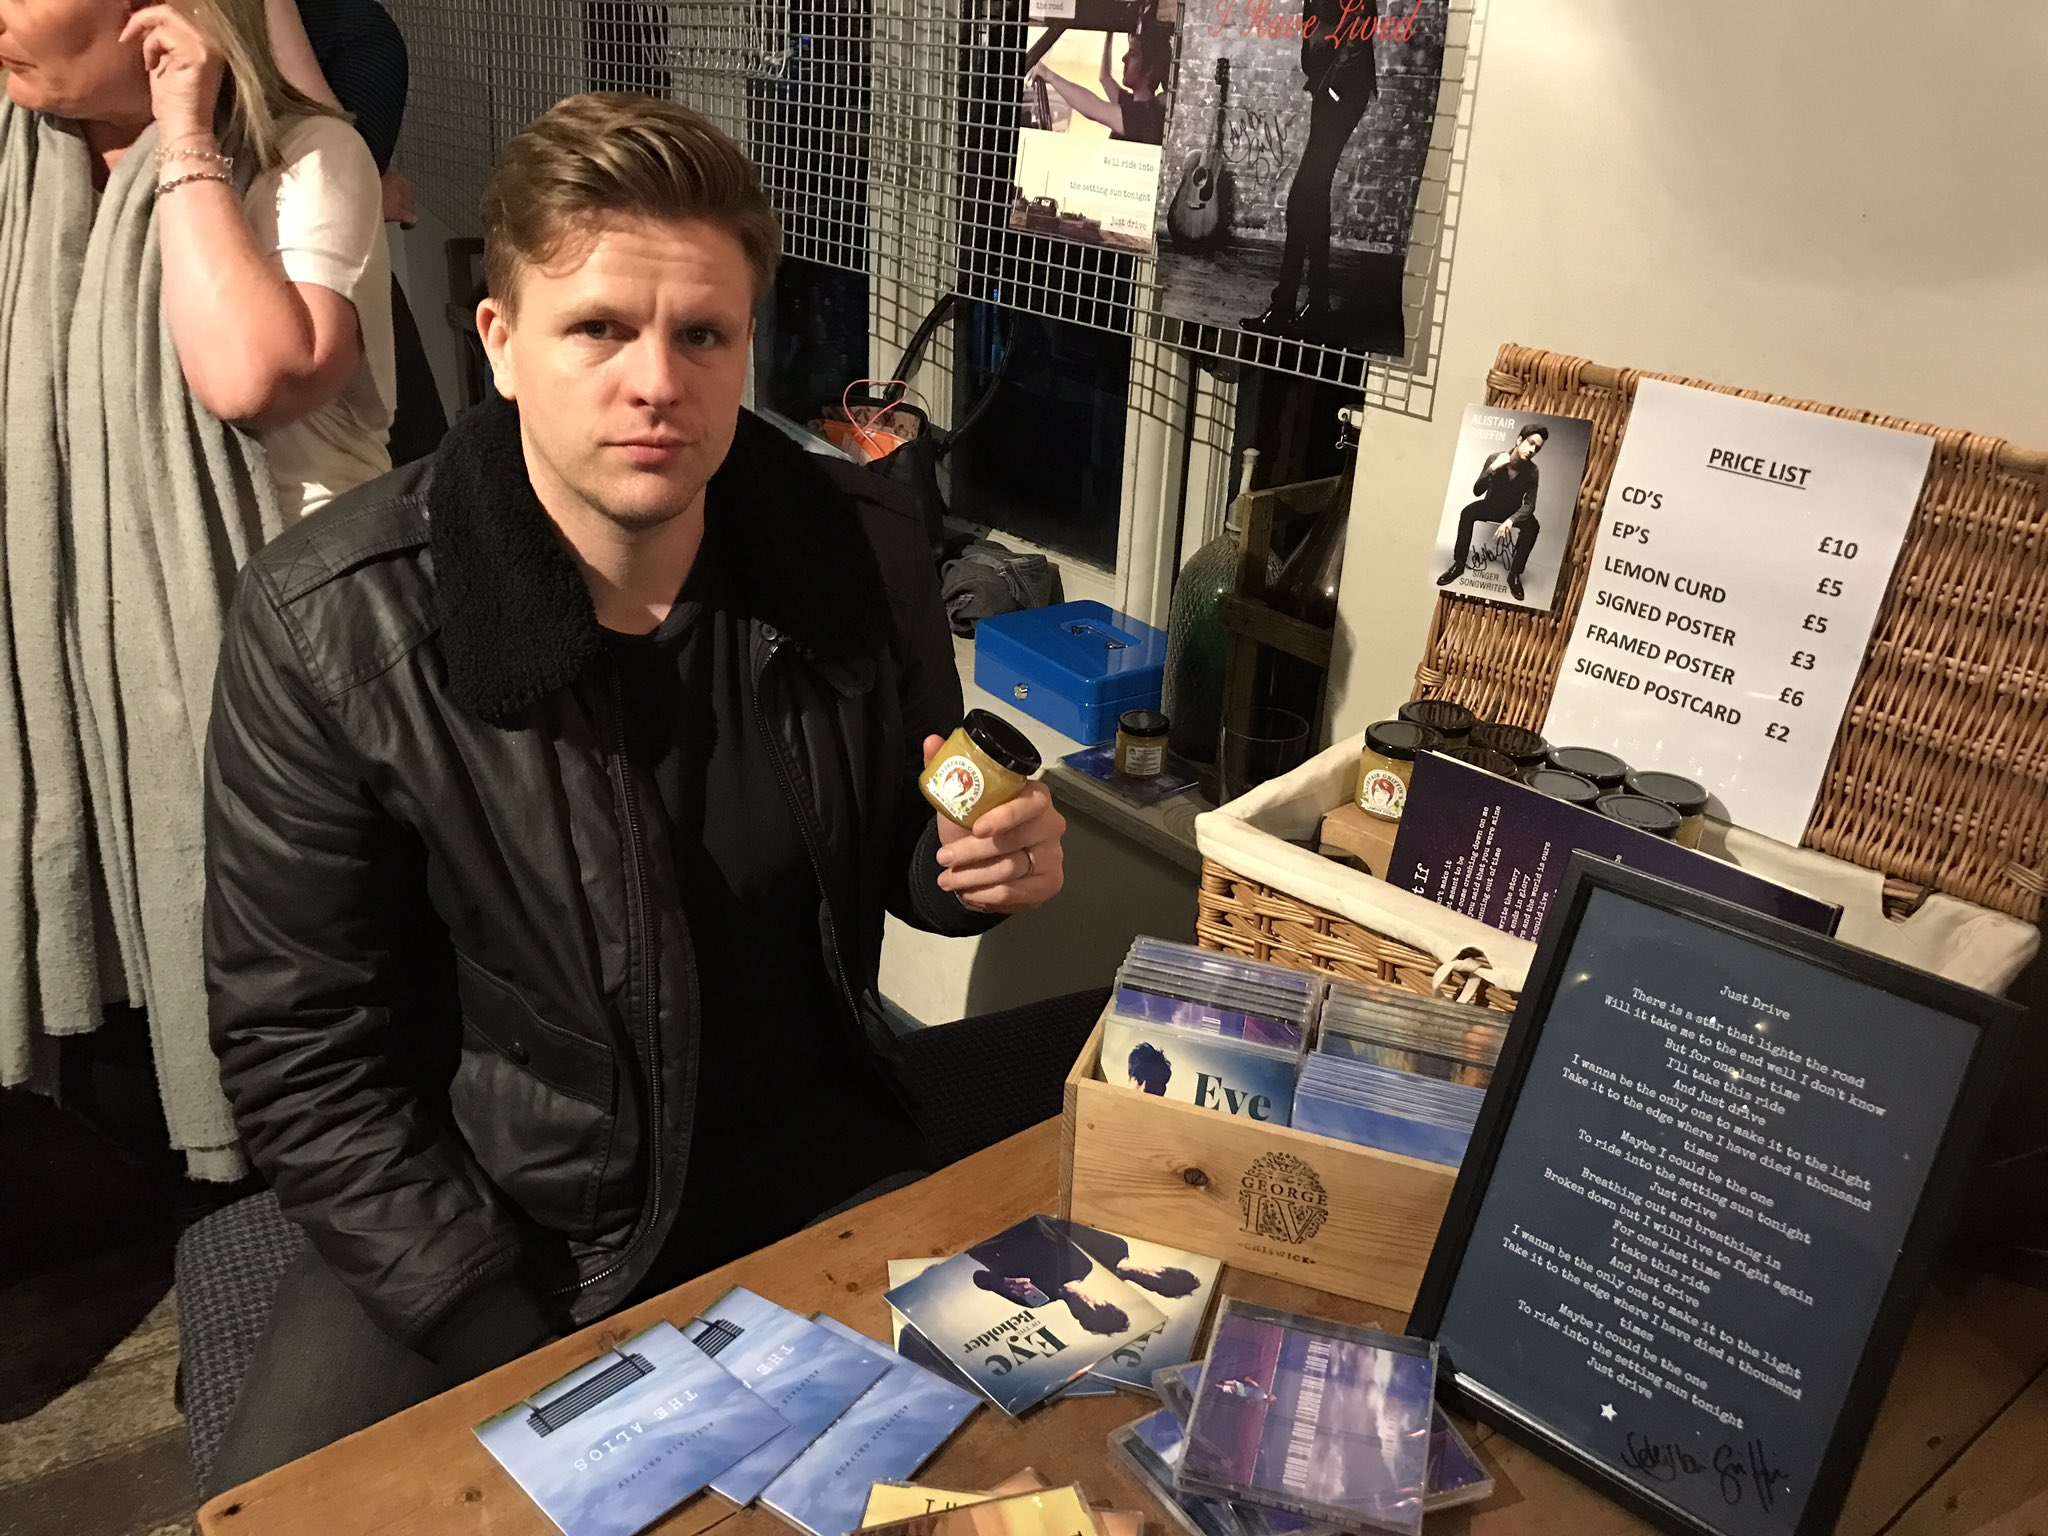 RT @AlistairGriffin: New merch man doing a fantastic job. Keep working for that bonus son @mrjakehumphrey https://t.co/JJqZSOKFOv